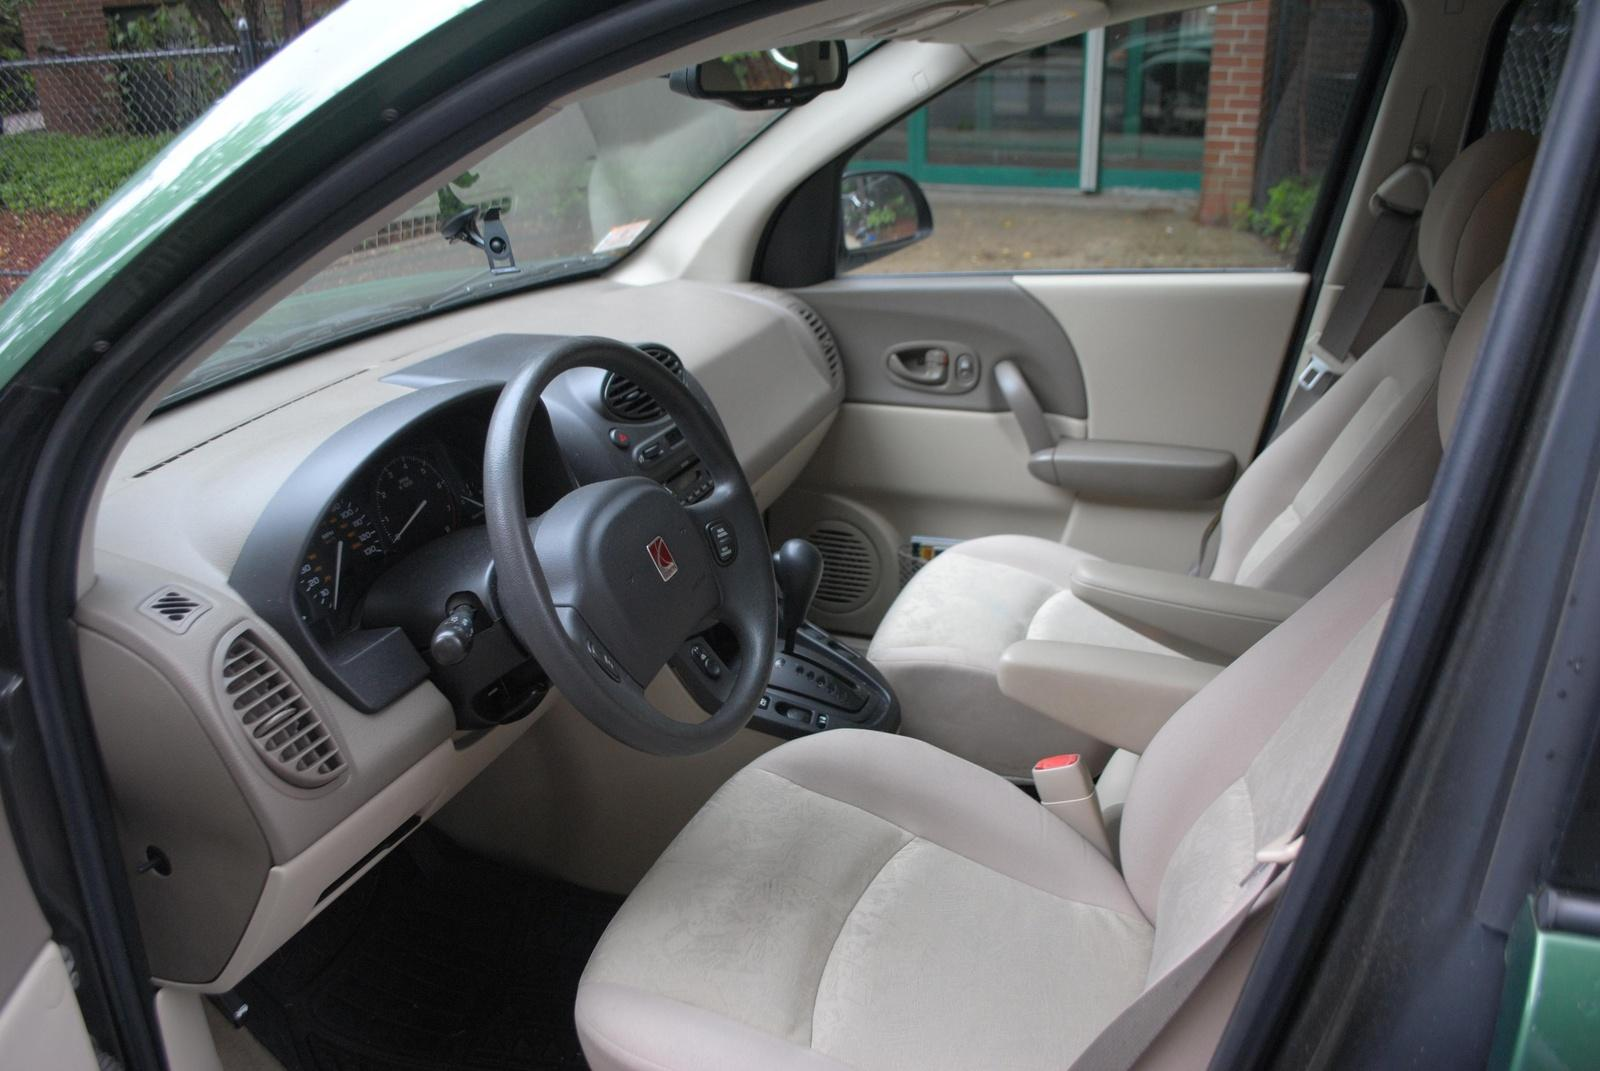 2002 saturn vue white gallery hd cars wallpaper 2003 saturn vue interior choice image hd cars wallpaper 2002 saturn vue interior images hd cars vanachro Gallery